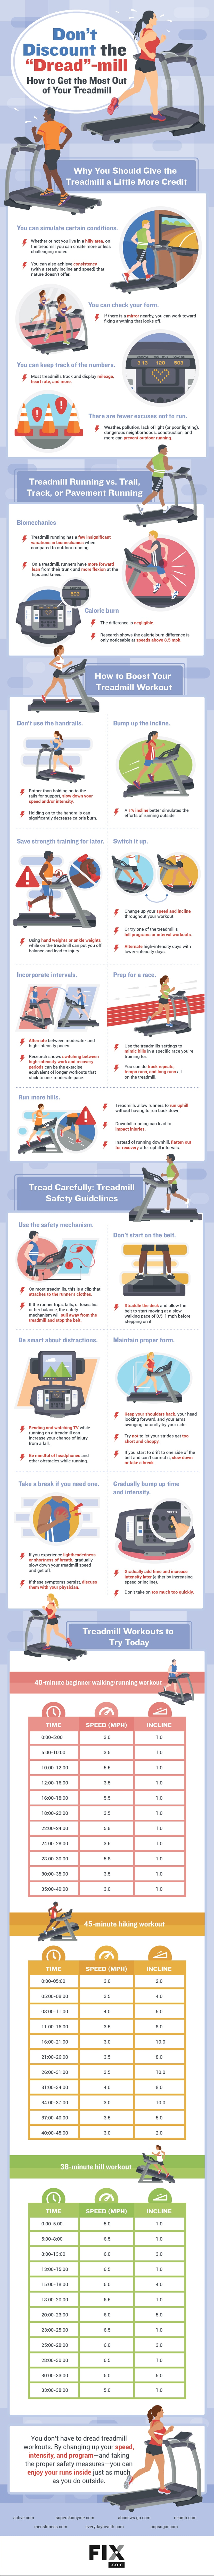 Treadmill Workout: How To Get The Most Out Of It Infographic